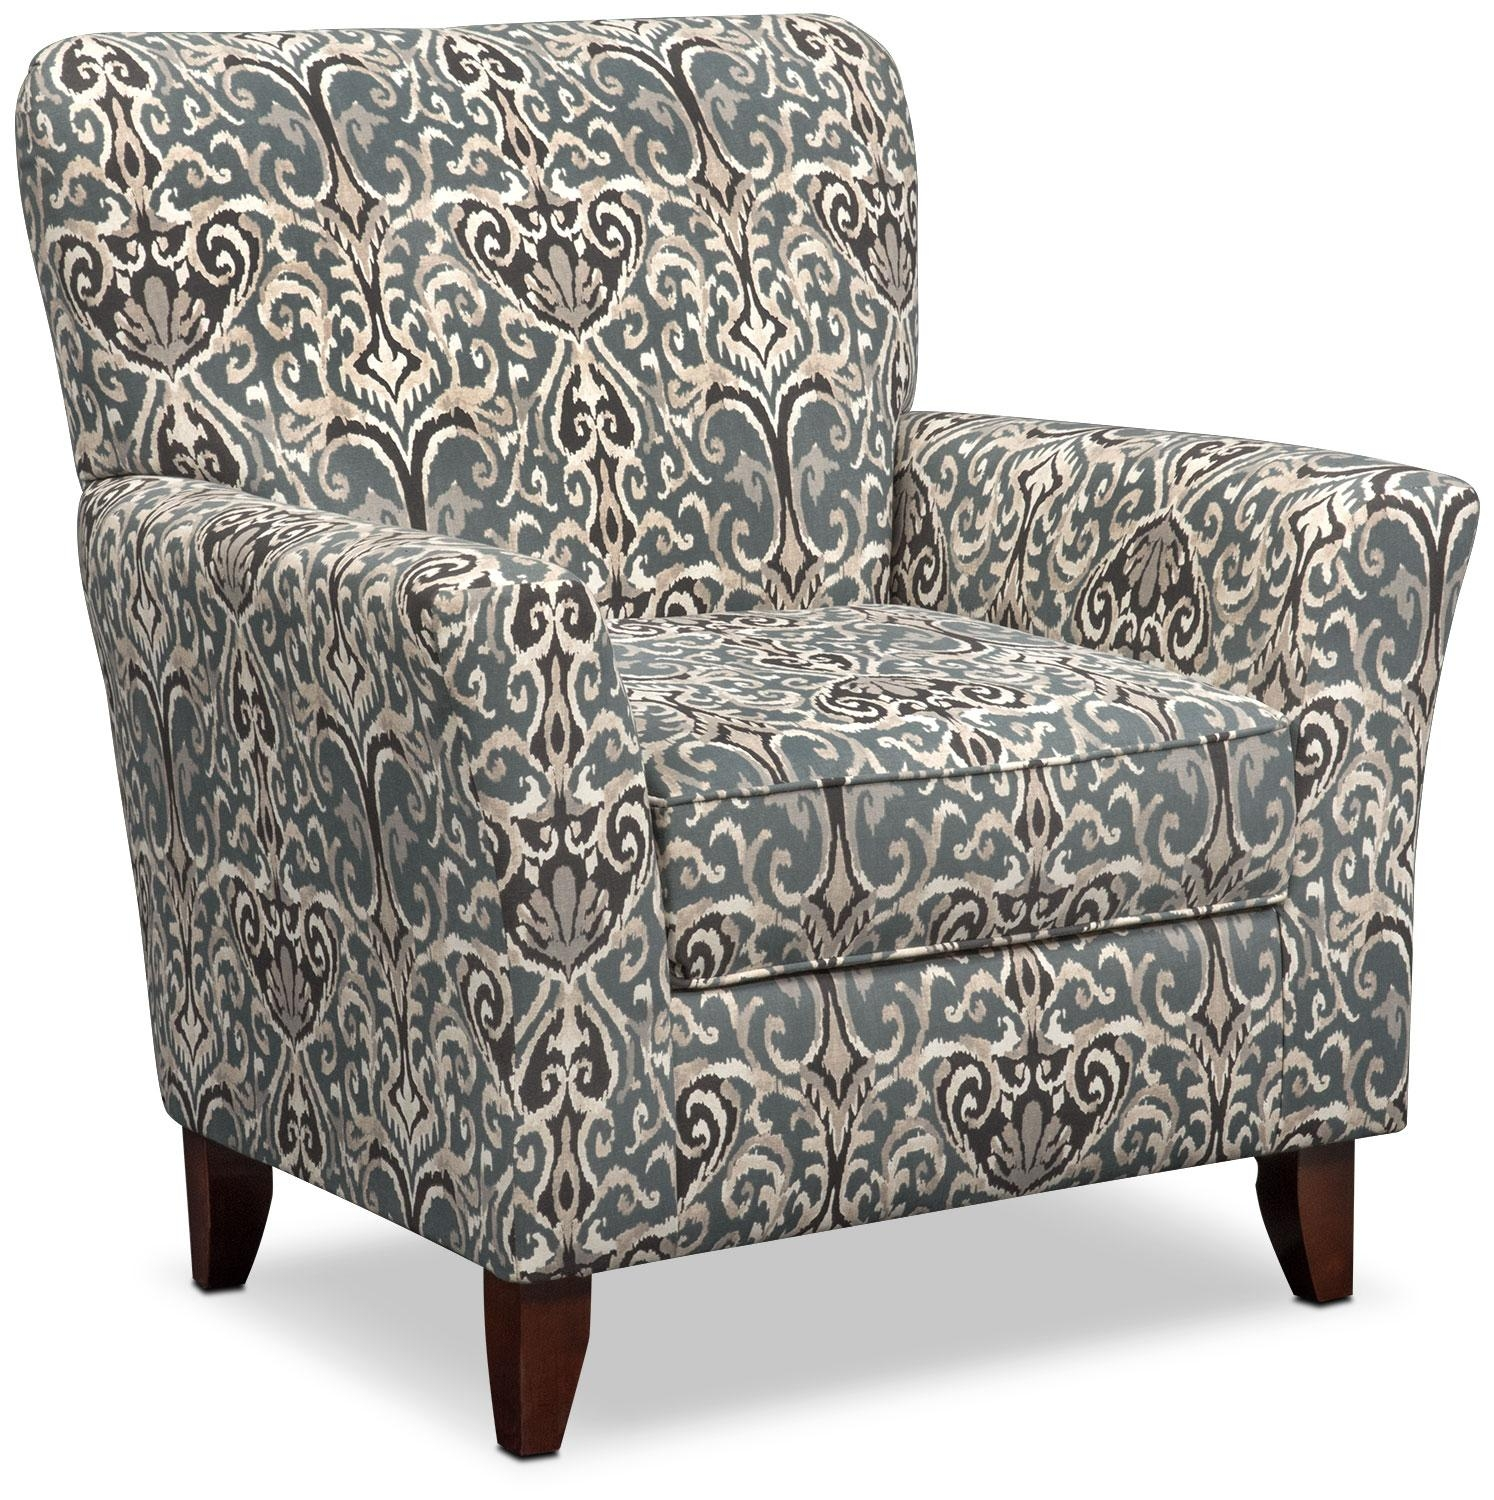 gray and white accent chairs hickory chair price list 20 photos sofa set ideas